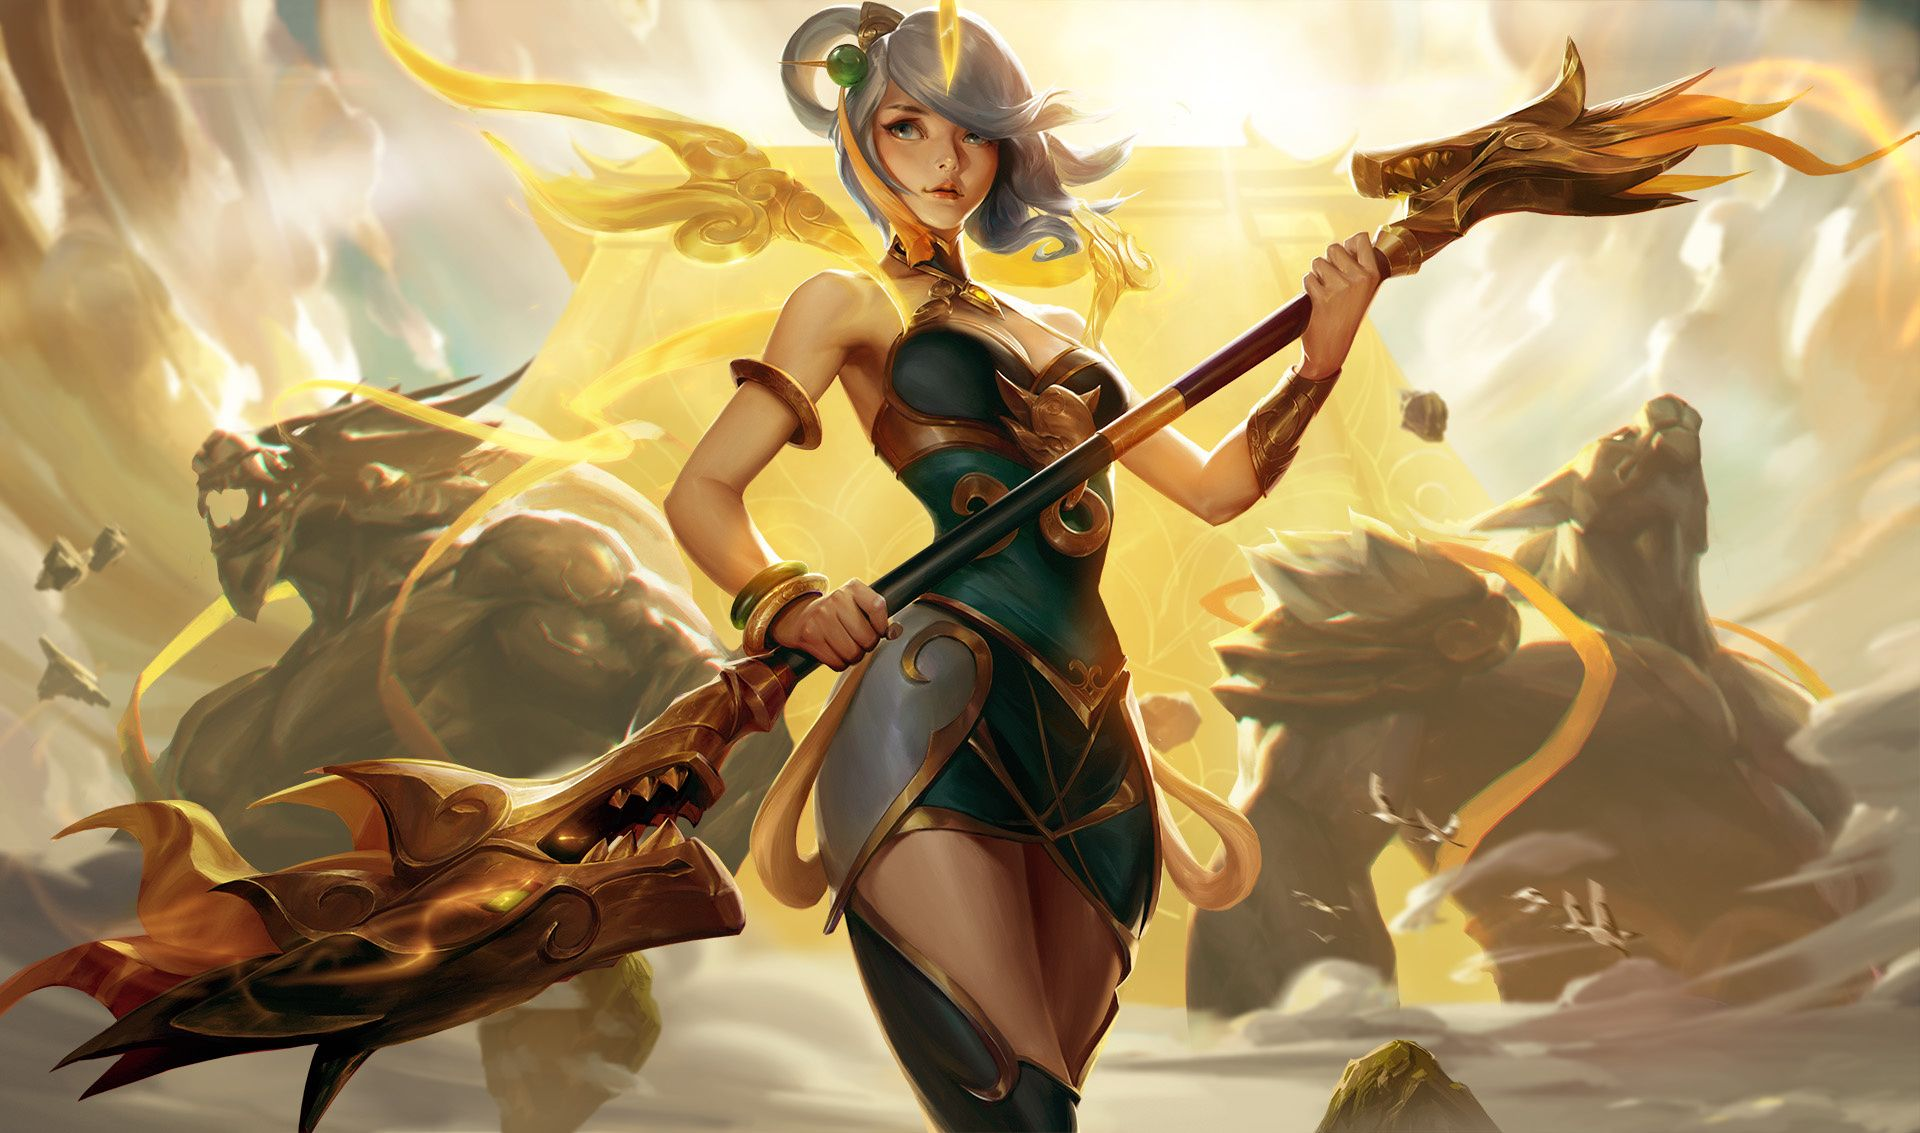 Lunar Empress Lux By Crow God Cg Computer Graphics Art In 2018 Mobile Legend Diamond 36 Cosplay League Of Legends Lol